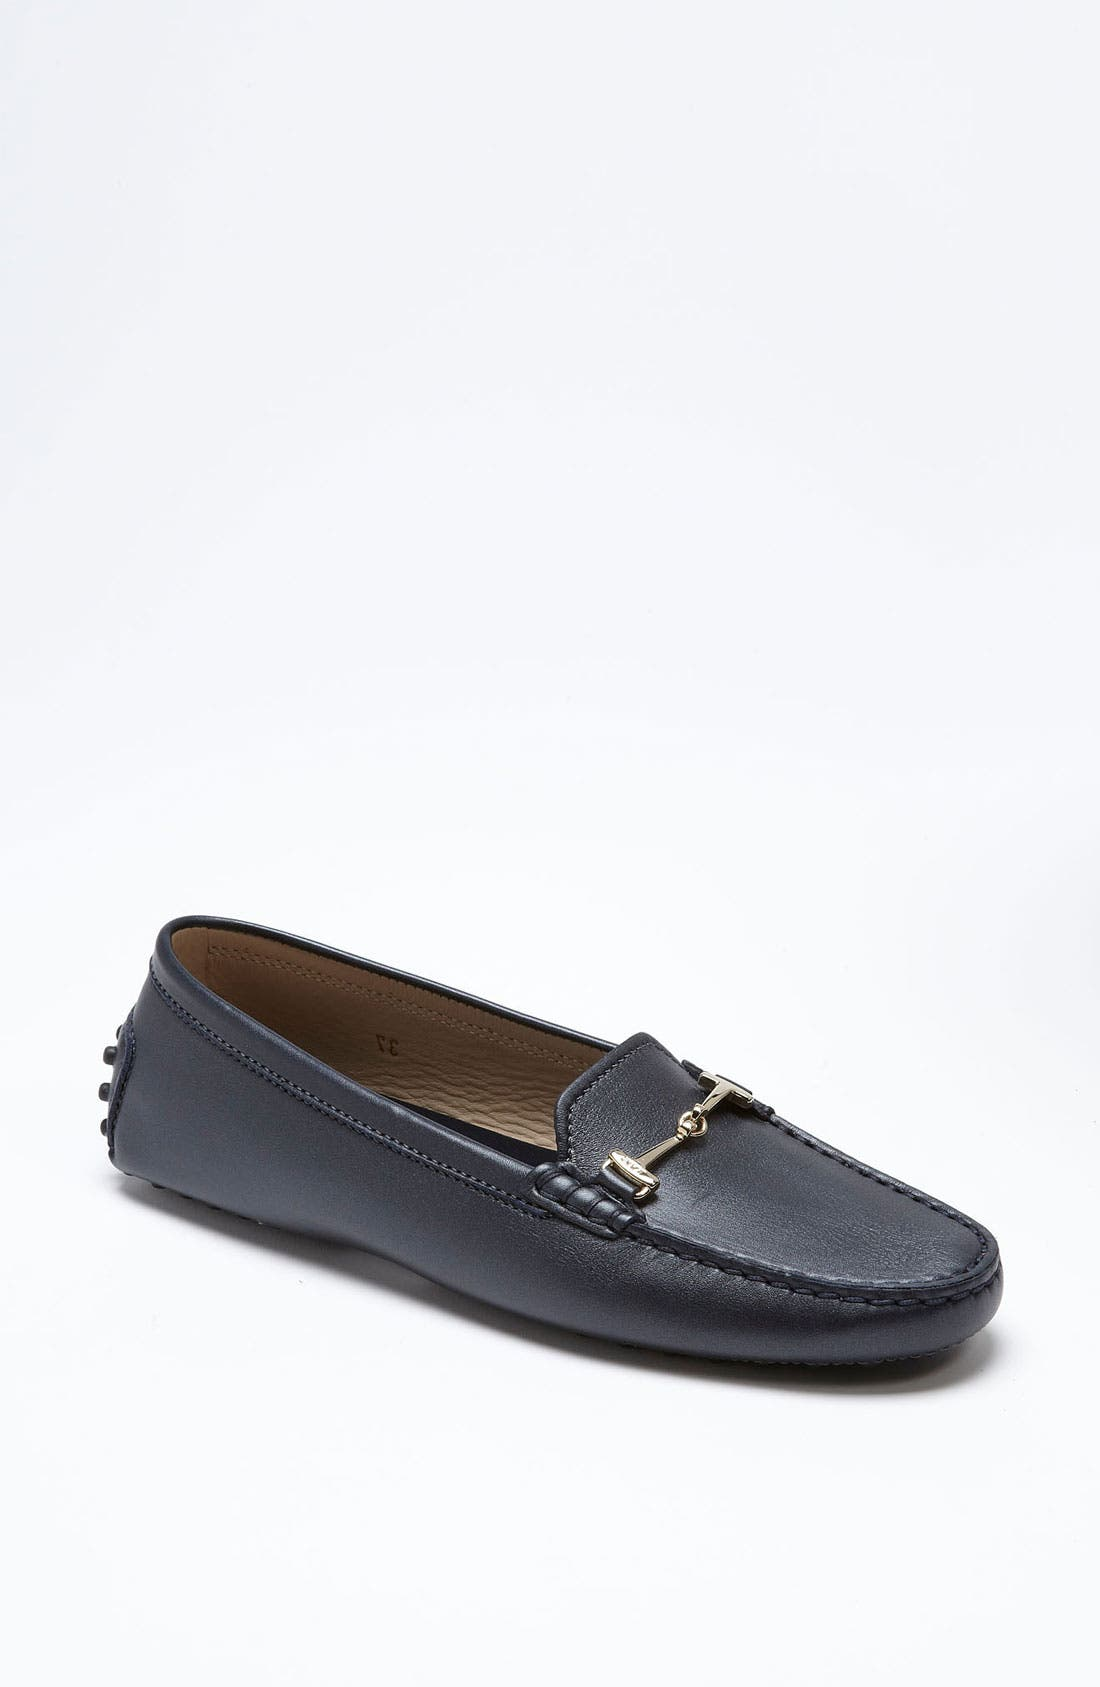 Alternate Image 1 Selected - Tod's 'Heaven' Moccasin